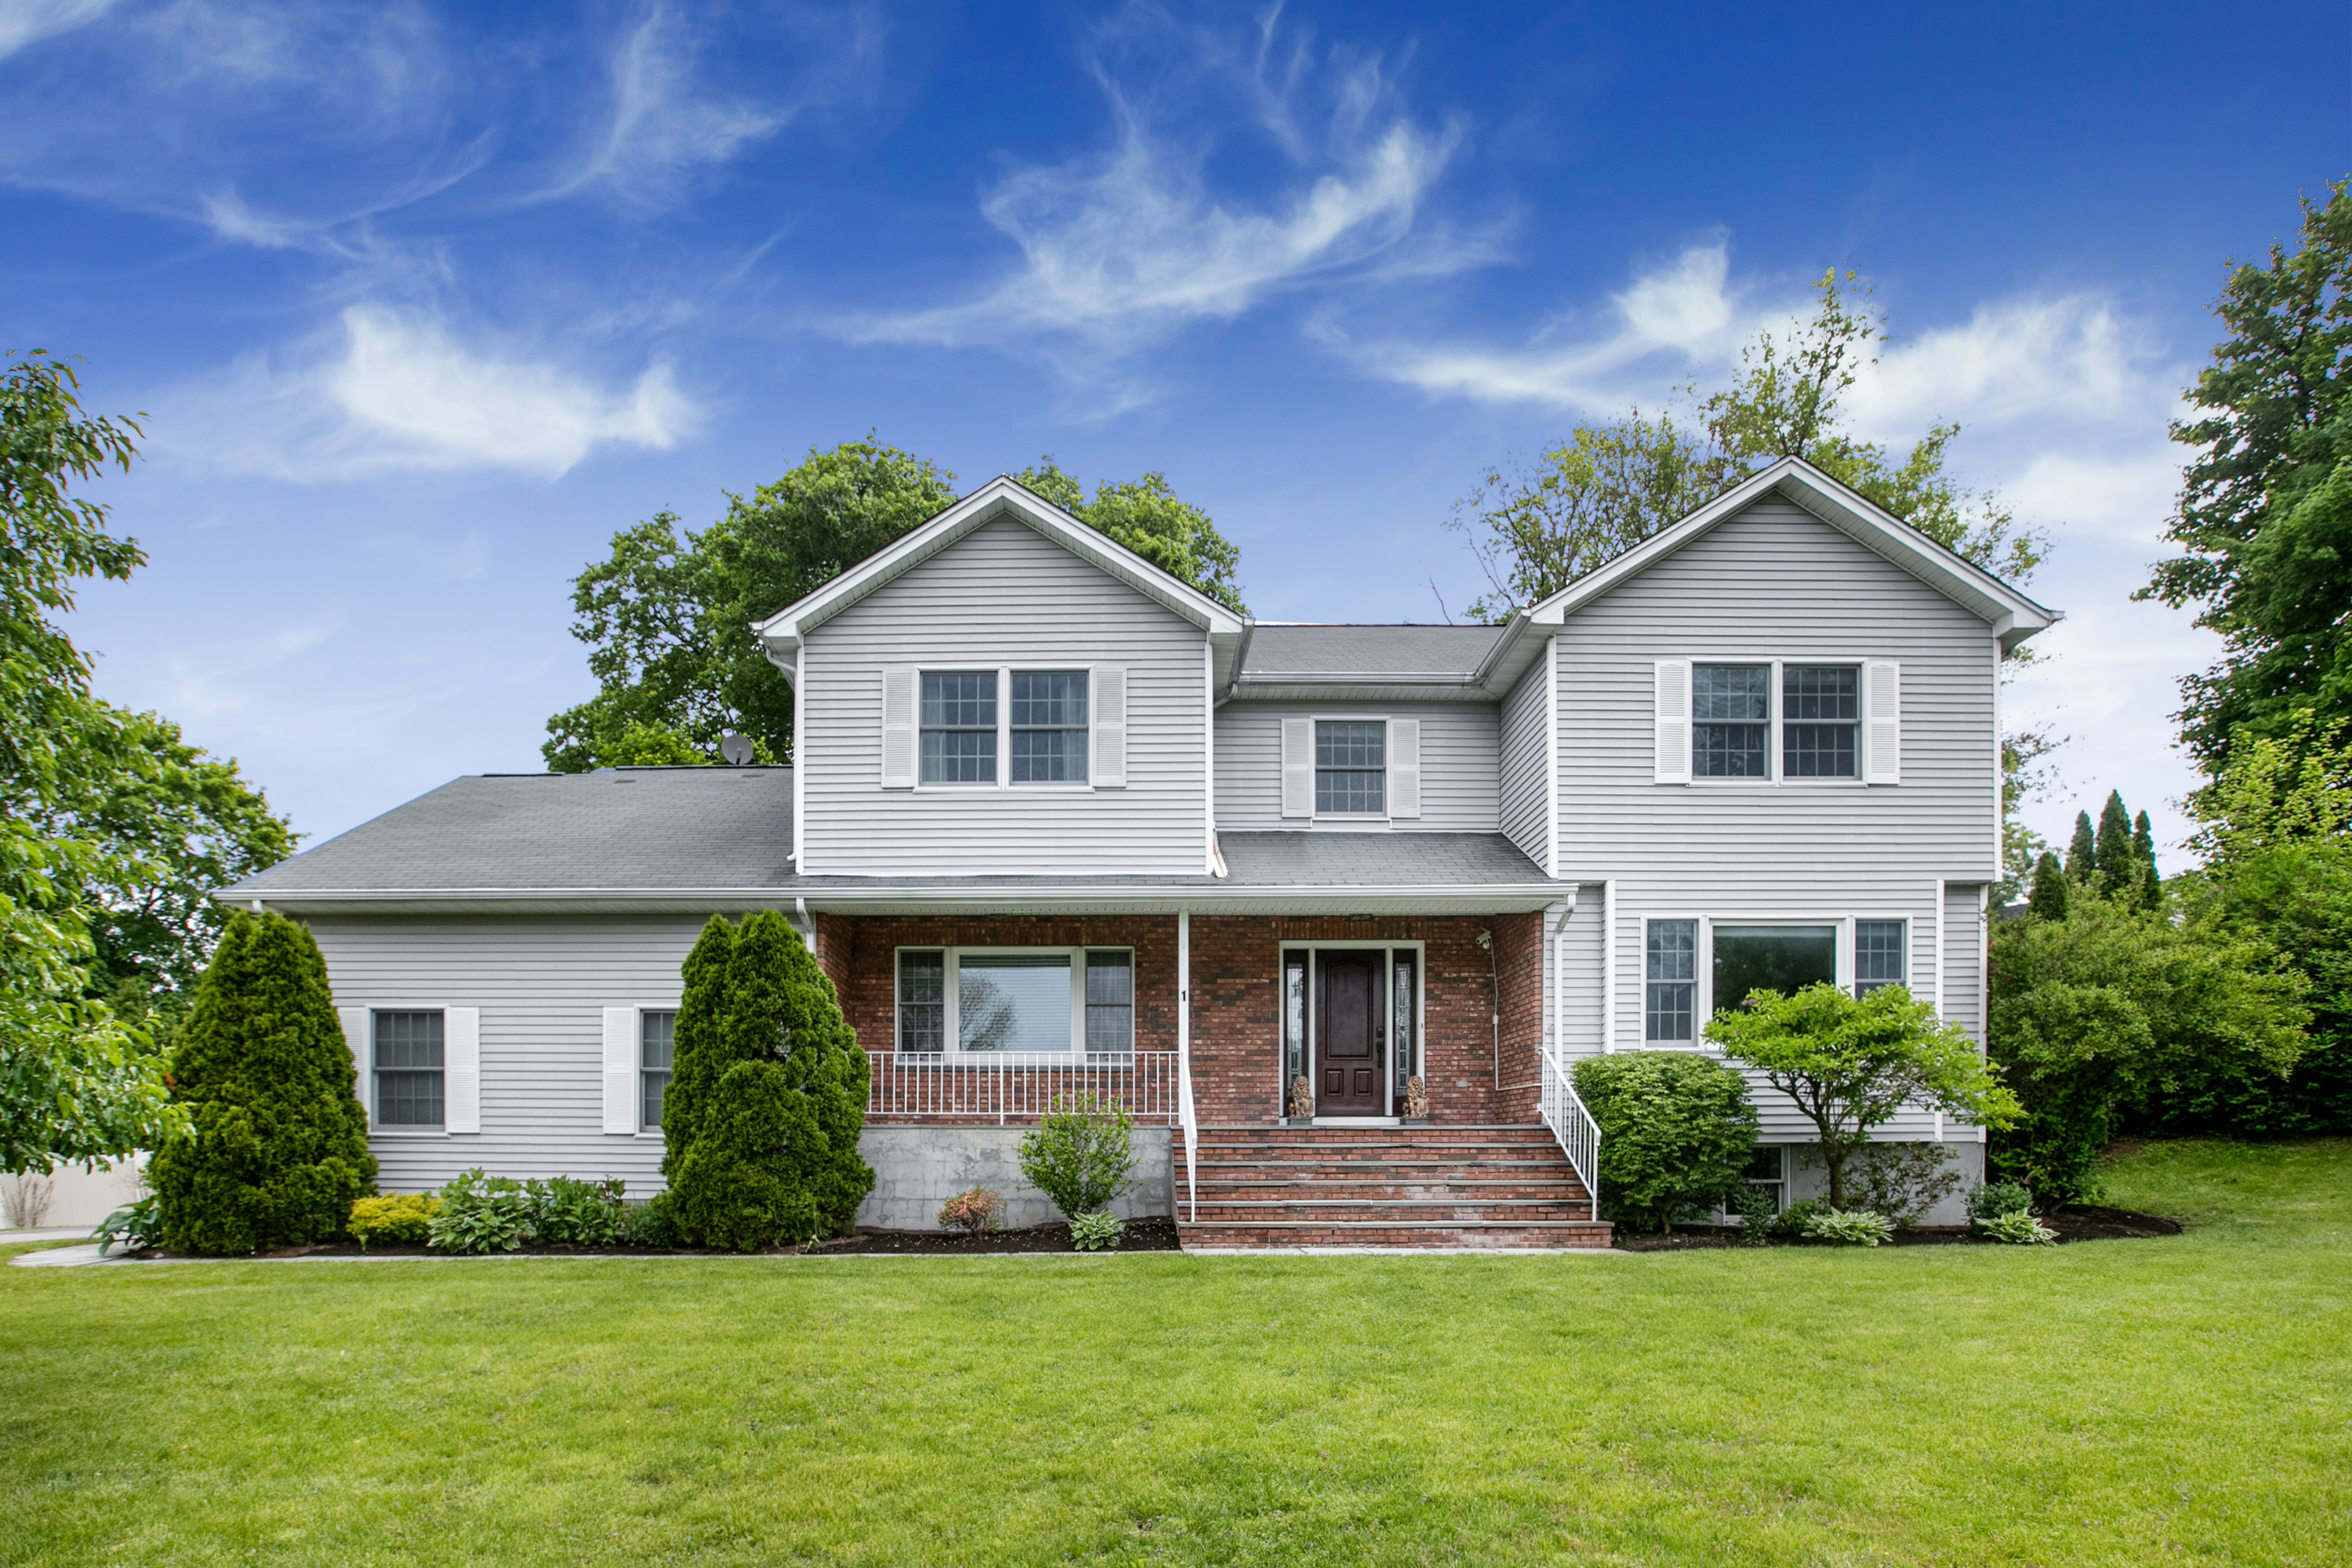 Single Family Home for sale in 1 Peaceable Court, Thornwood, NY ,10594